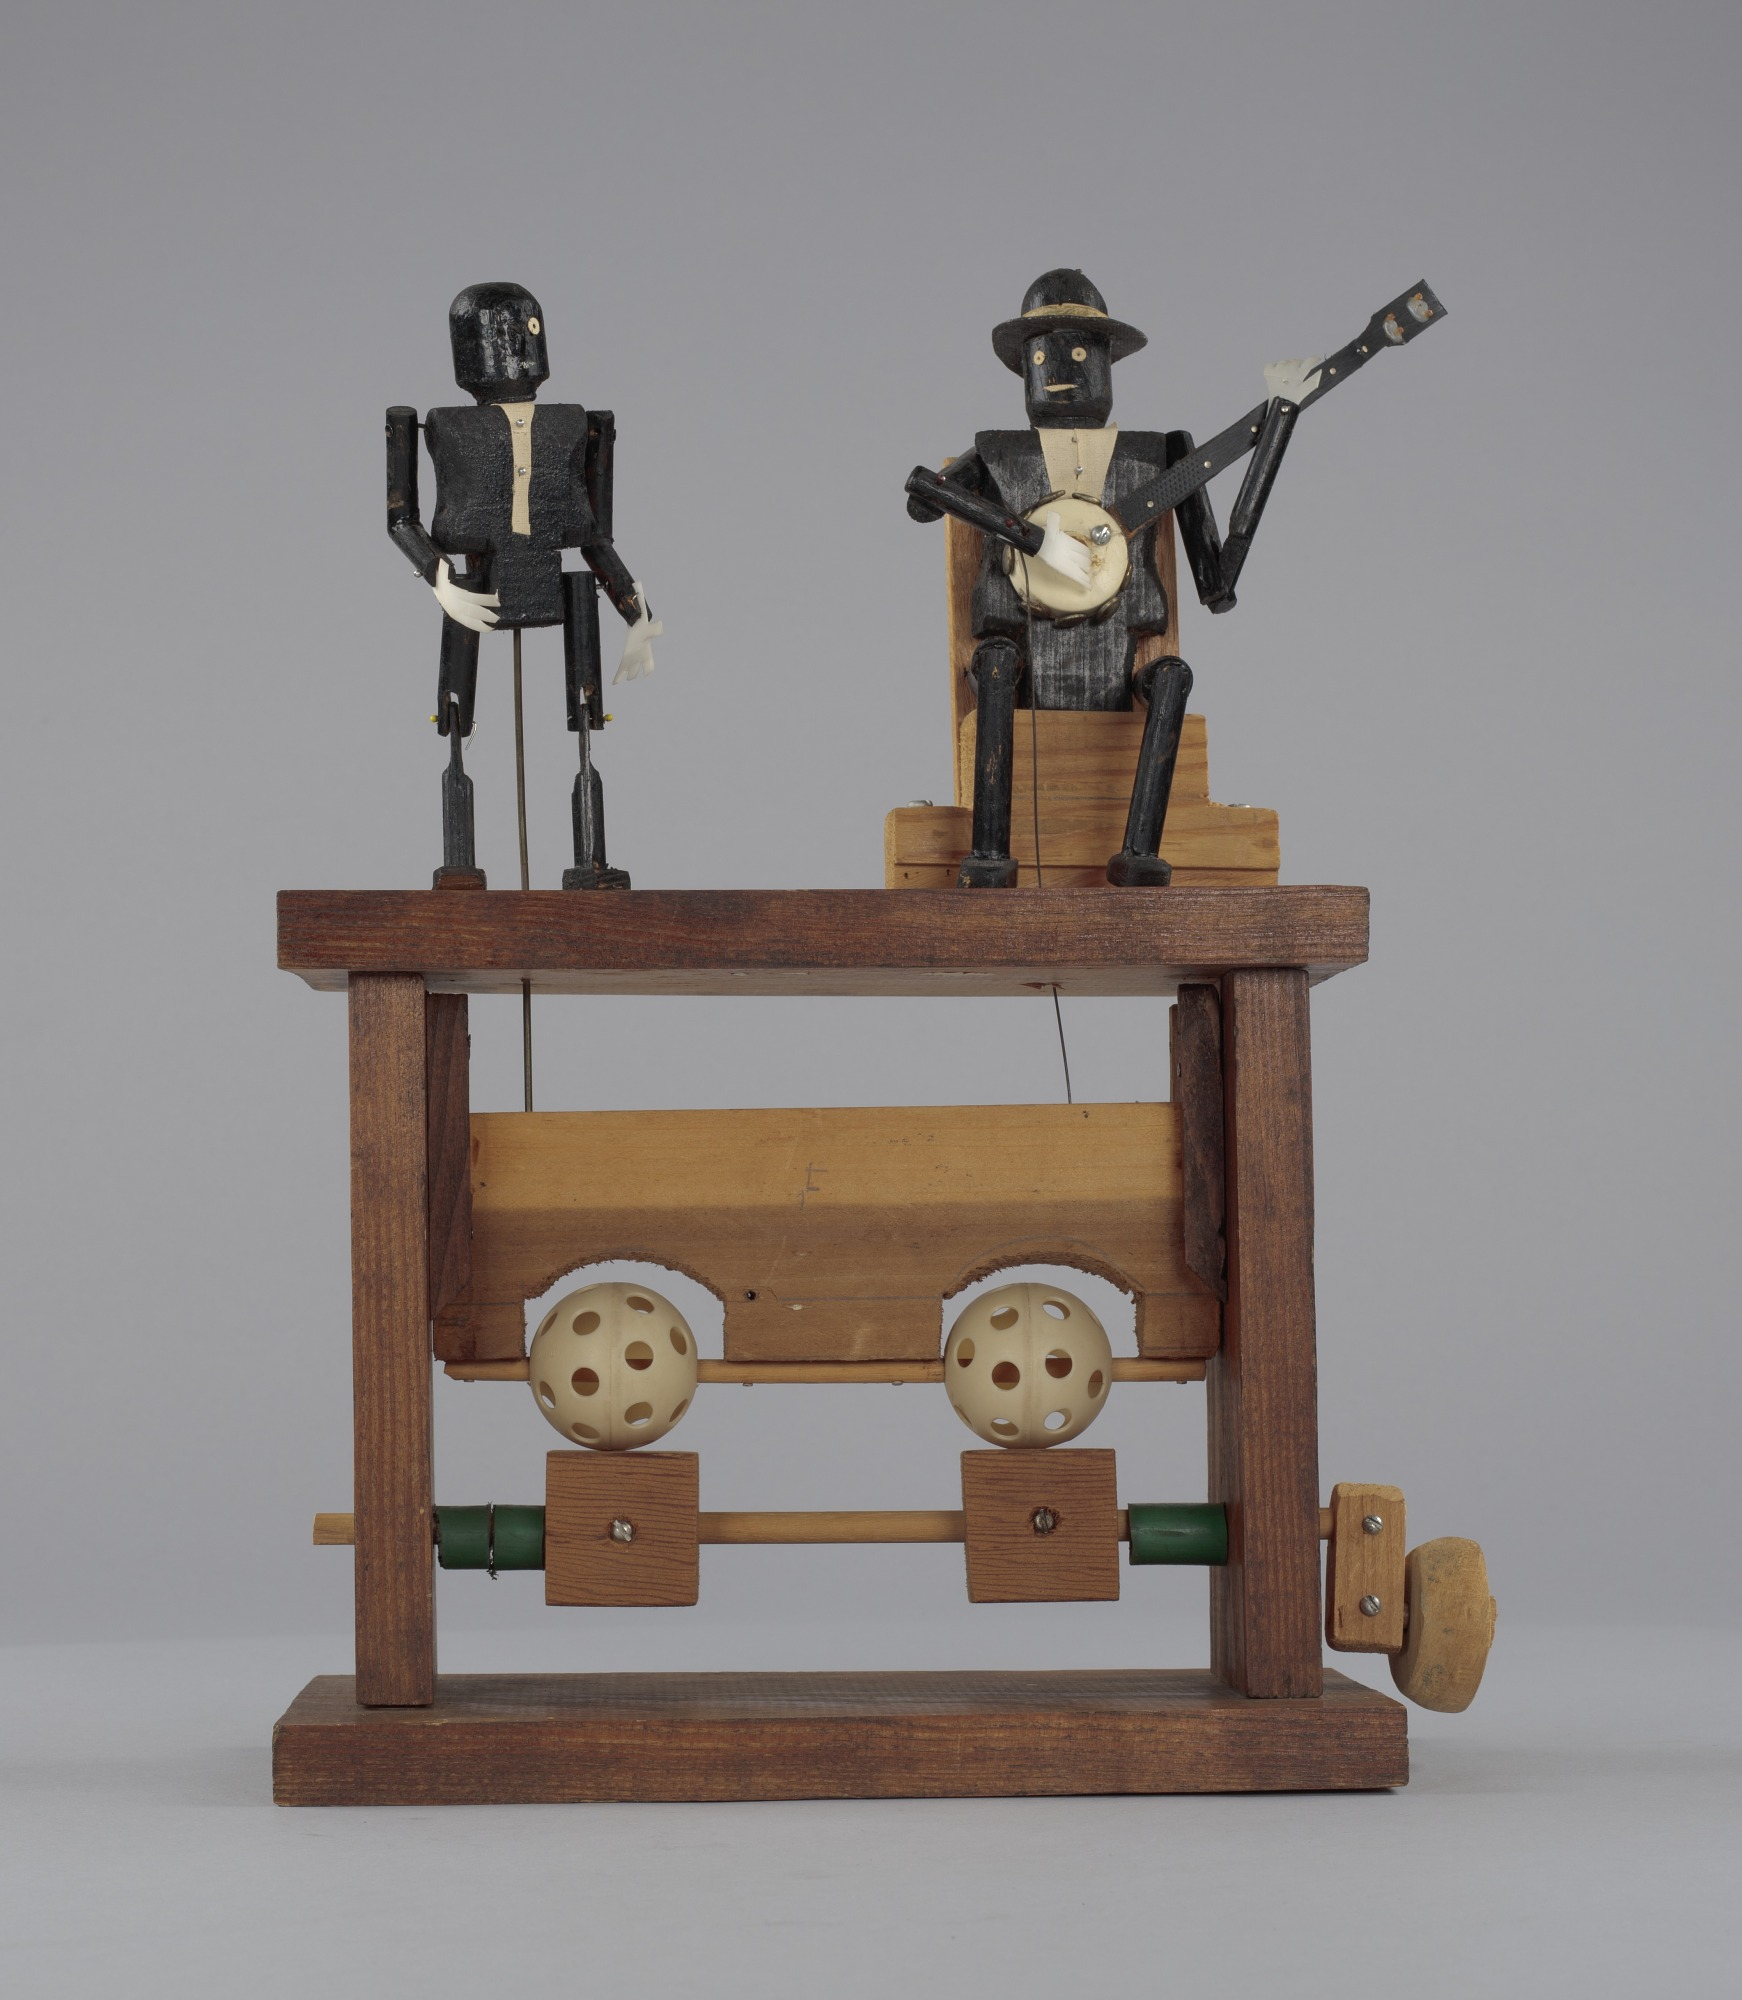 Image 1 for Crank toy in the form of a minstrel banjo player and minstrel male dancer